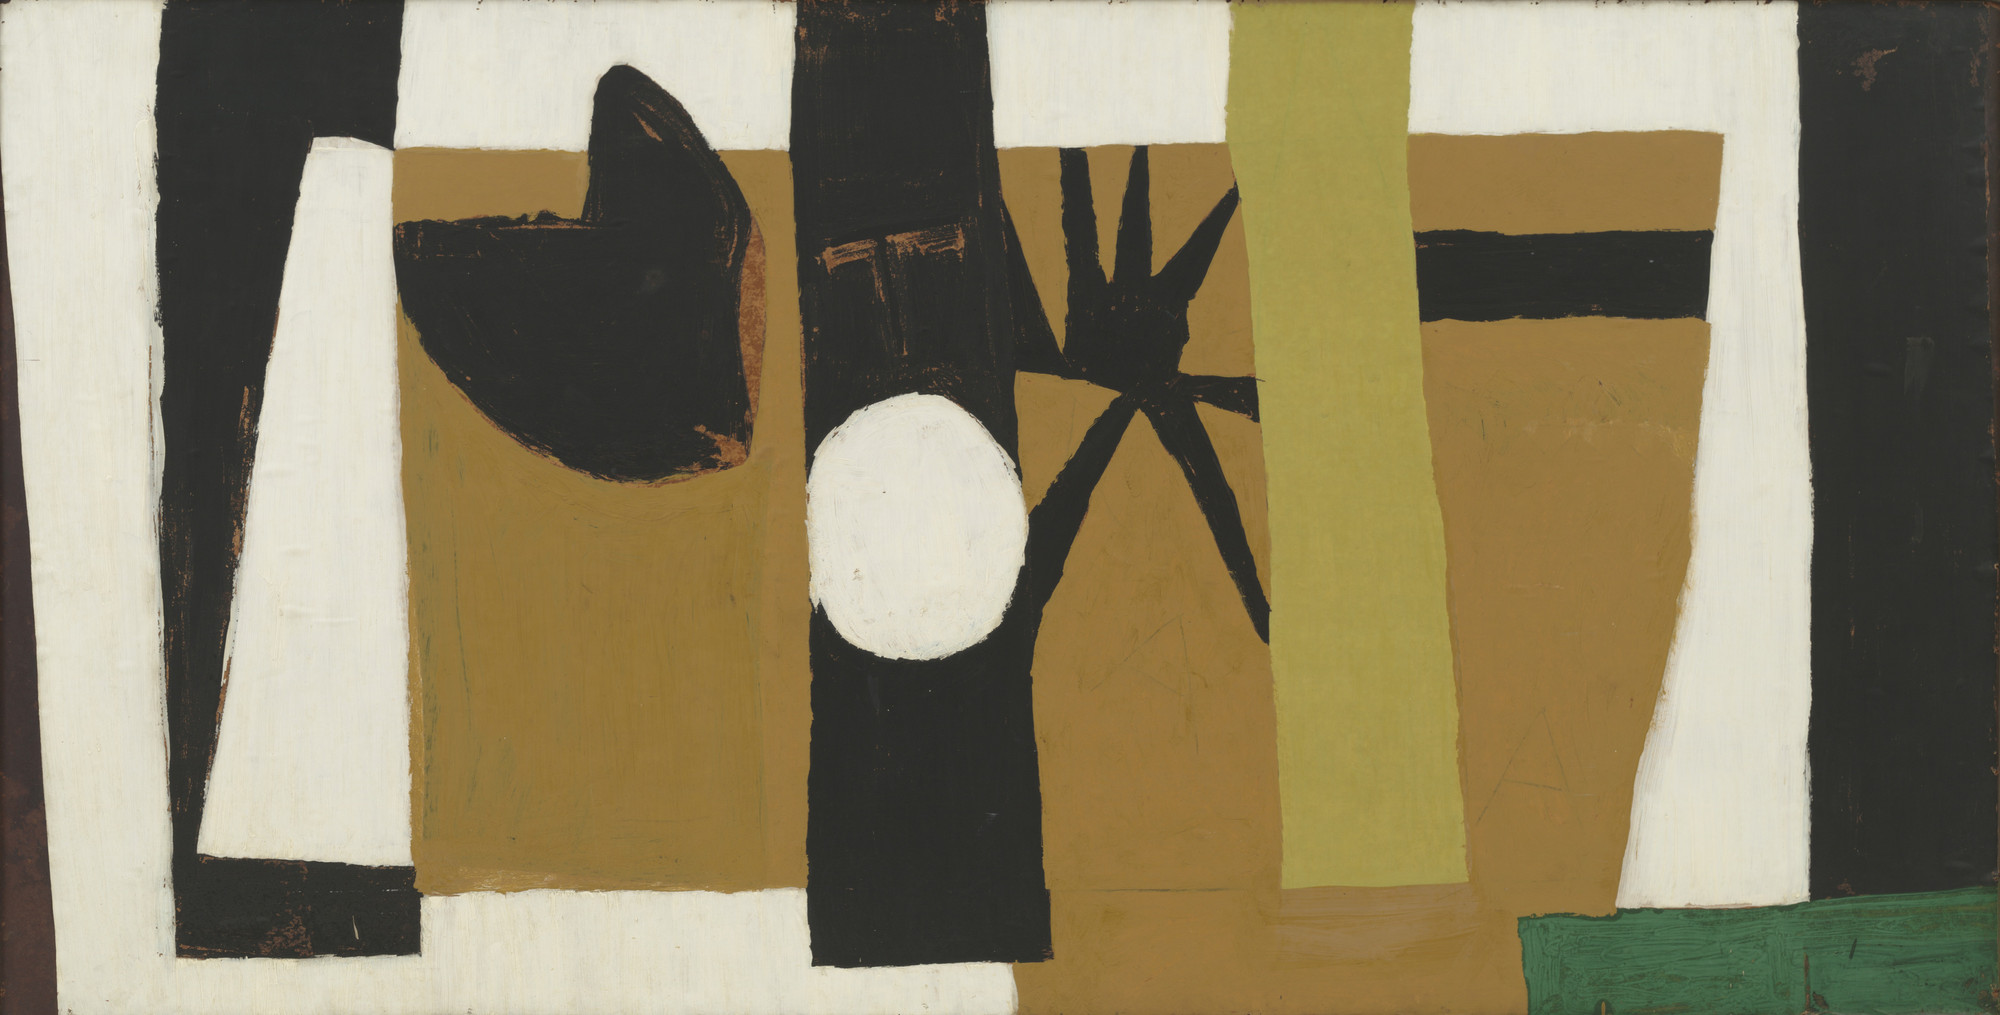 Robert Motherwell. The Voyage. 1949